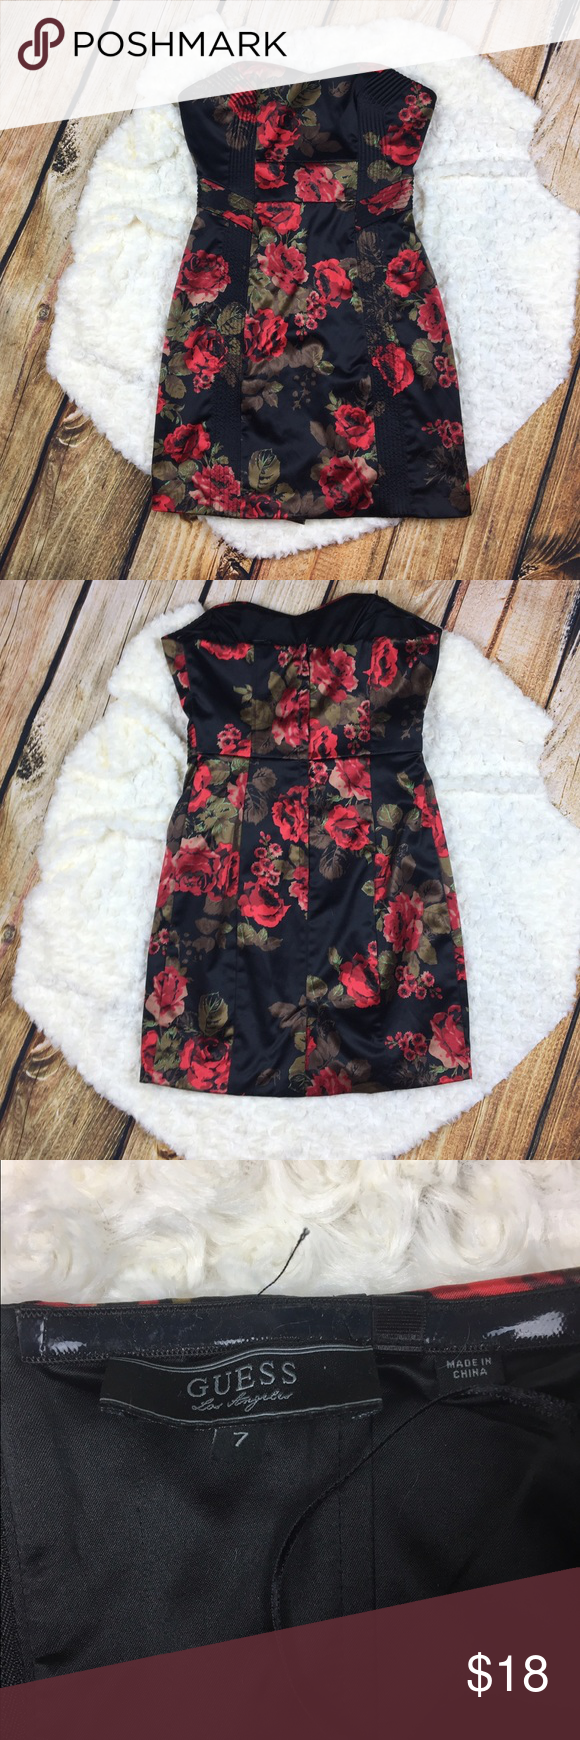 389cd493204 Guess Rose Dress Black and red rose dress by guess. Zip up thee back. Has  some stretch to the top. Two hanger straps inside. Some damage to the  inside (see ...